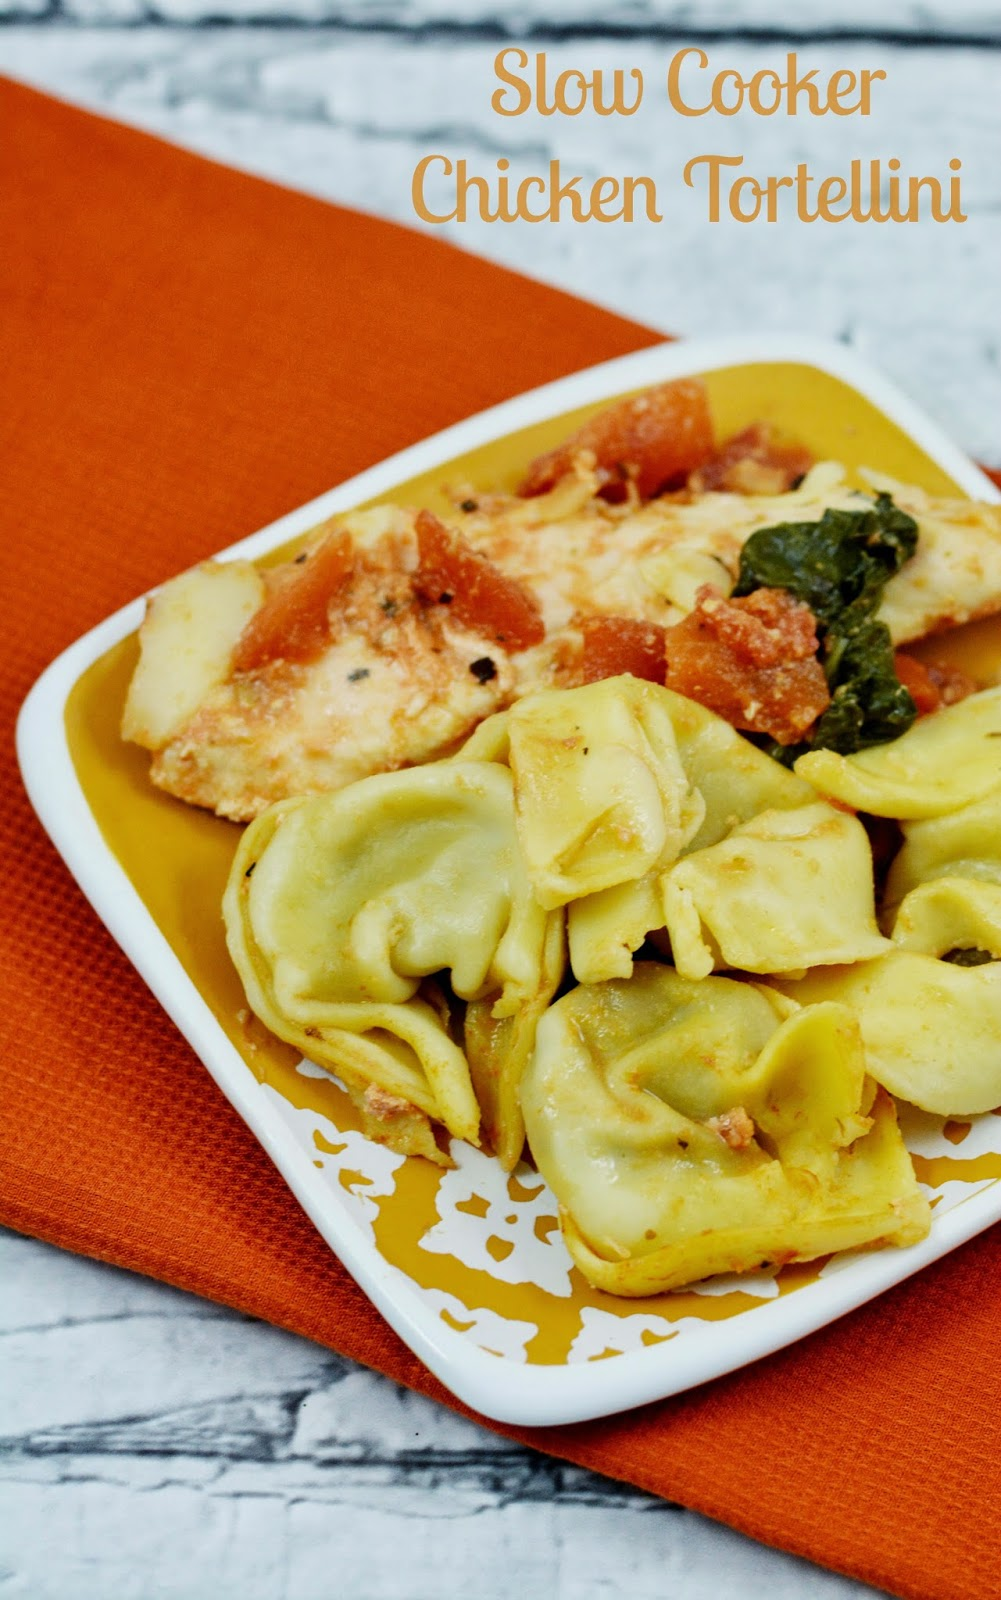 Slow cooker chicken and tortellini. #crockpot #freezermeal